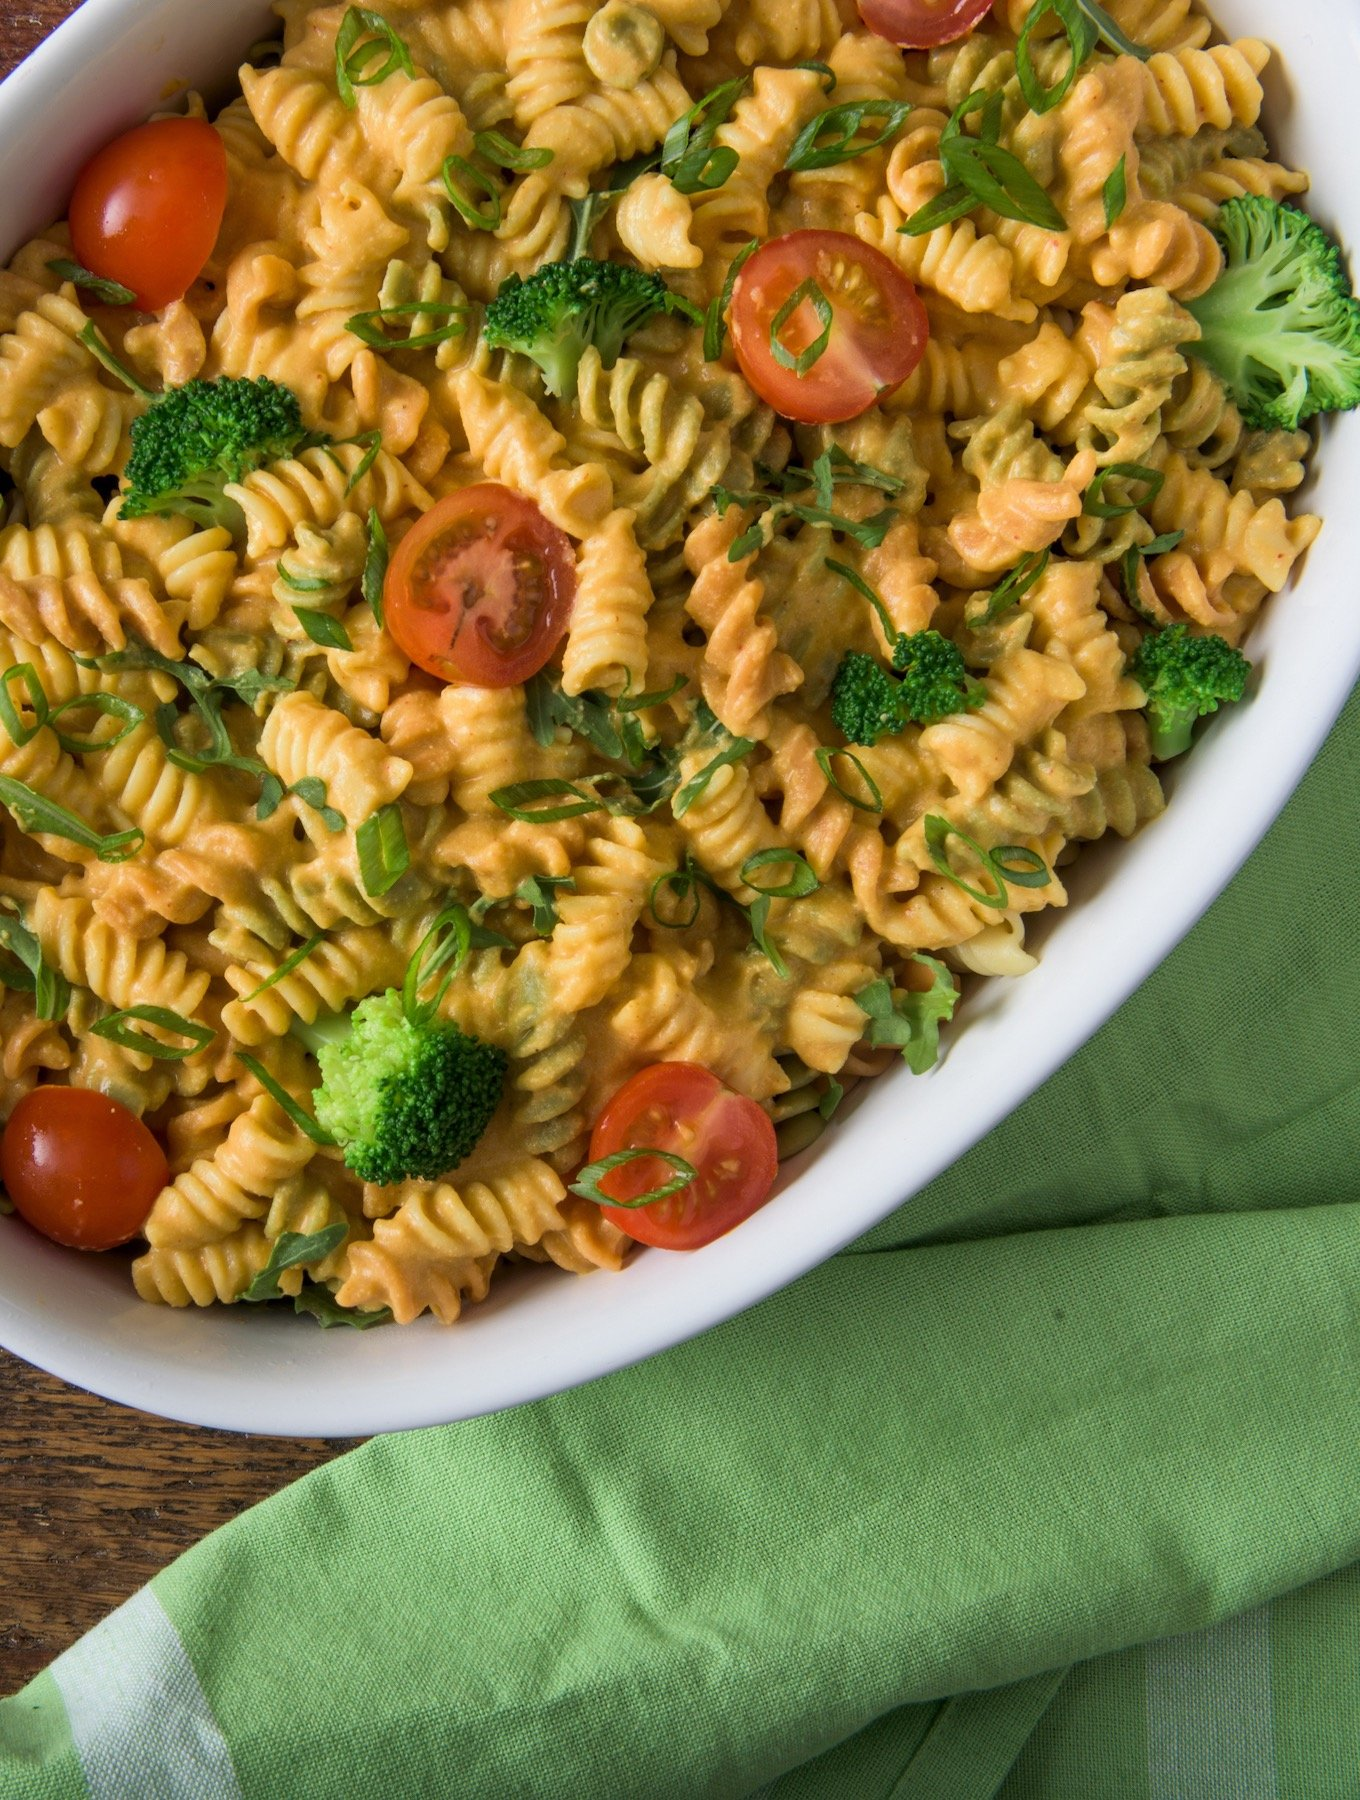 Cheesy Primavera Mac from Vegan Mac & Cheese by Robin Robertson